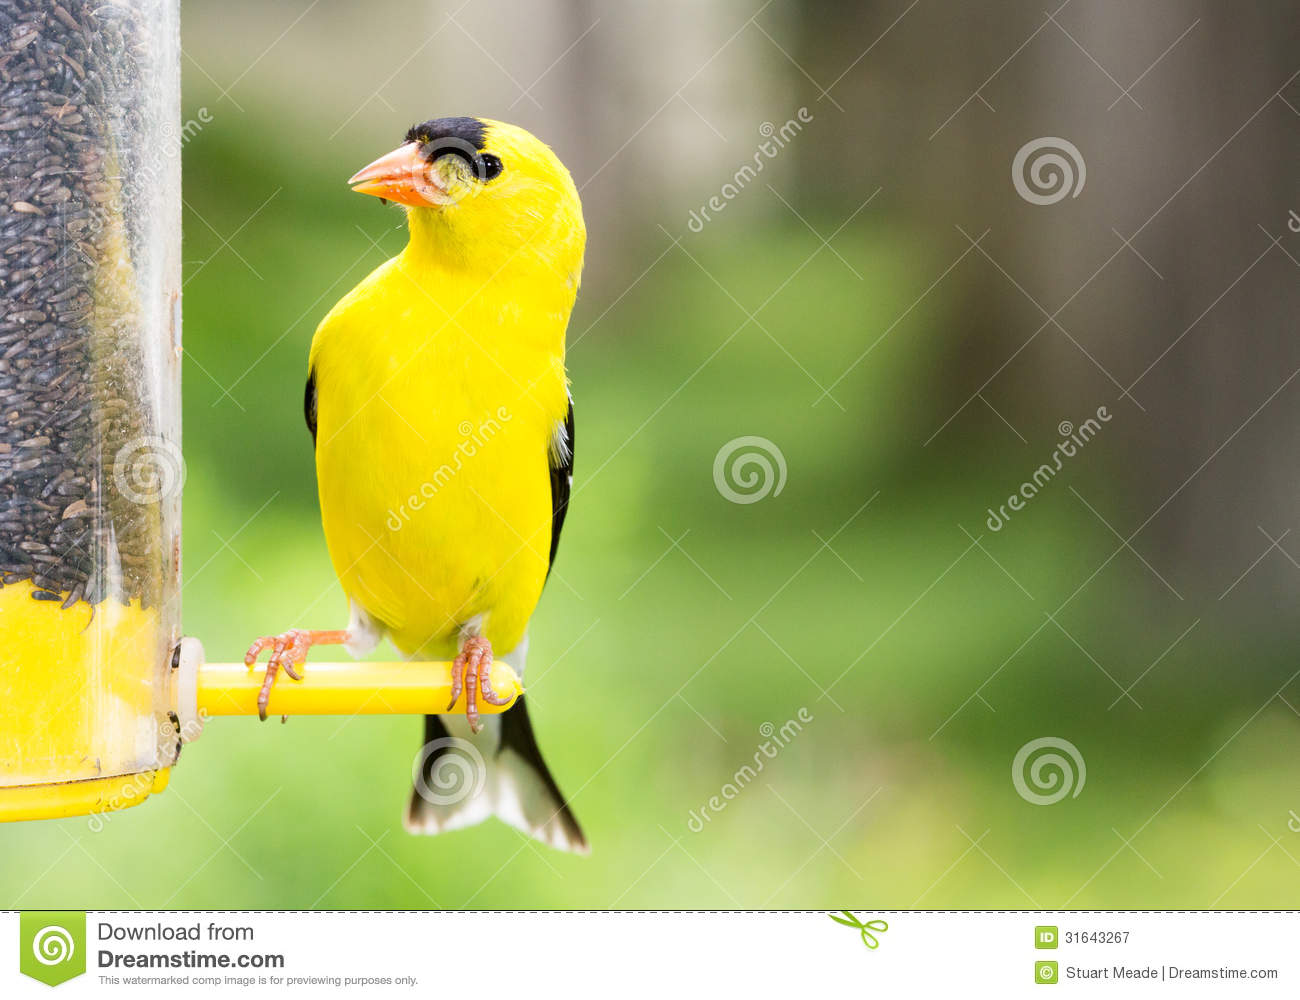 don warbler we who the migrate our it rumped feeder through yellow that see host enjoyed was to t are mainenaturediary a birds feeders may today until often male bird they suet